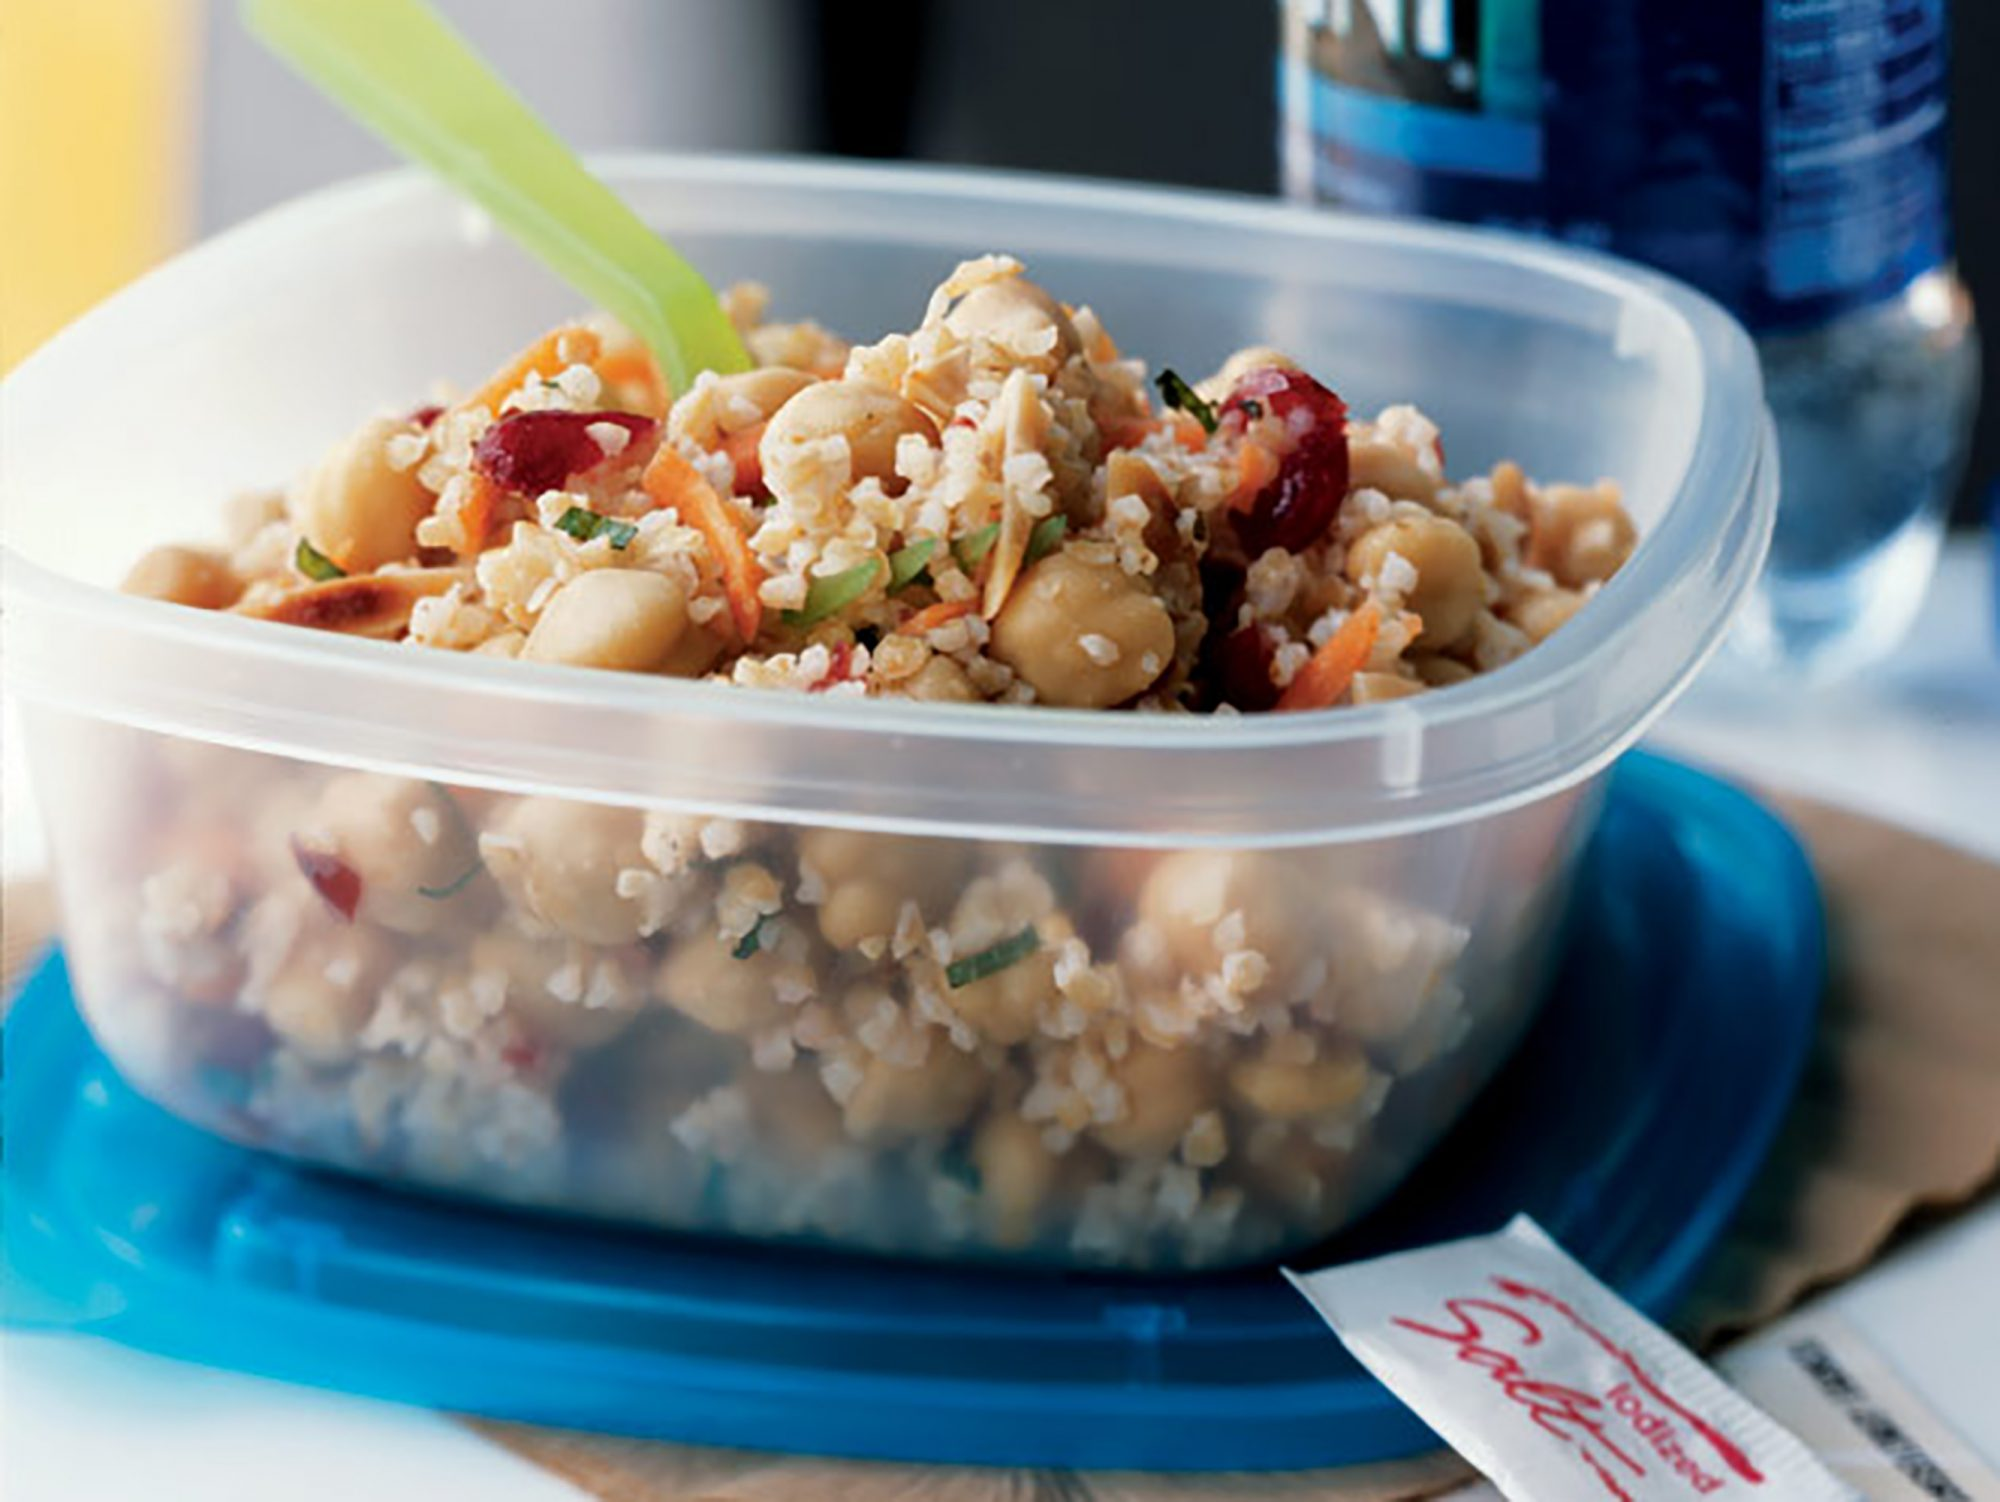 Moroccan-Spiced Bulgur and Chickpea Salad